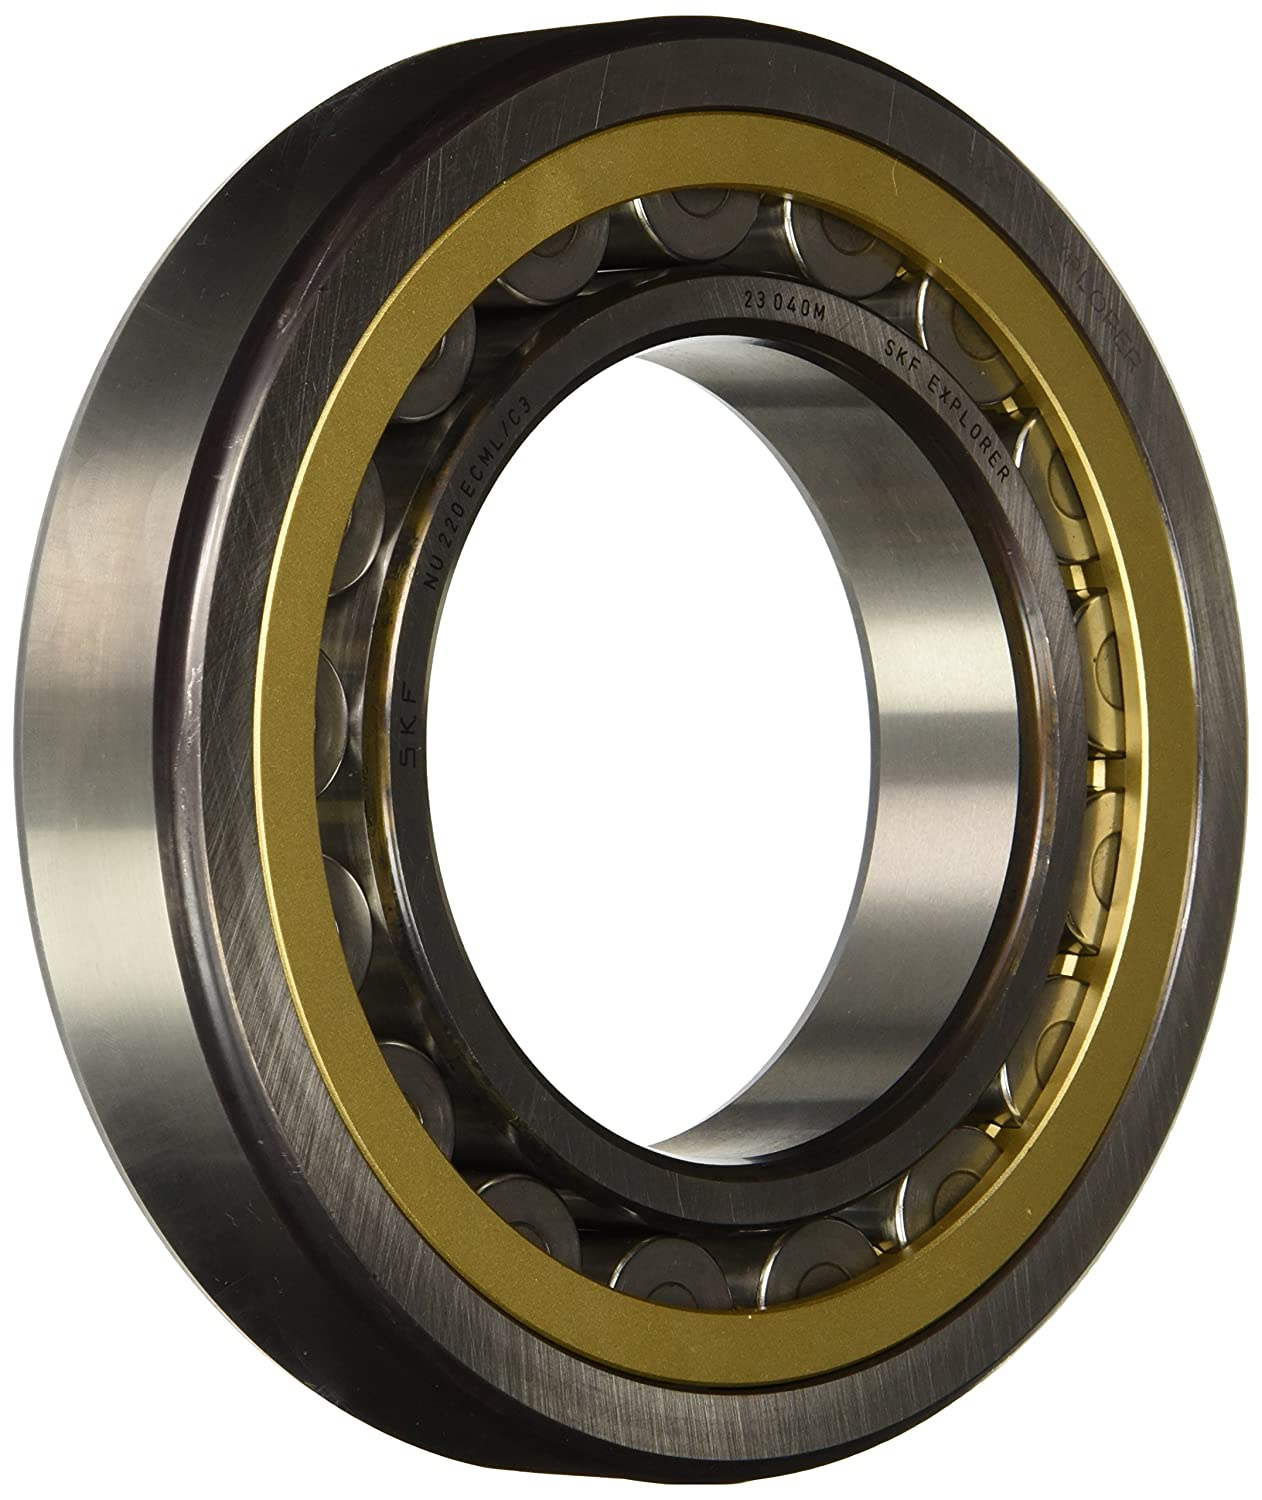 Removable Inner Ring Urb NU410 M C3 Cylindrical Roller Bearing